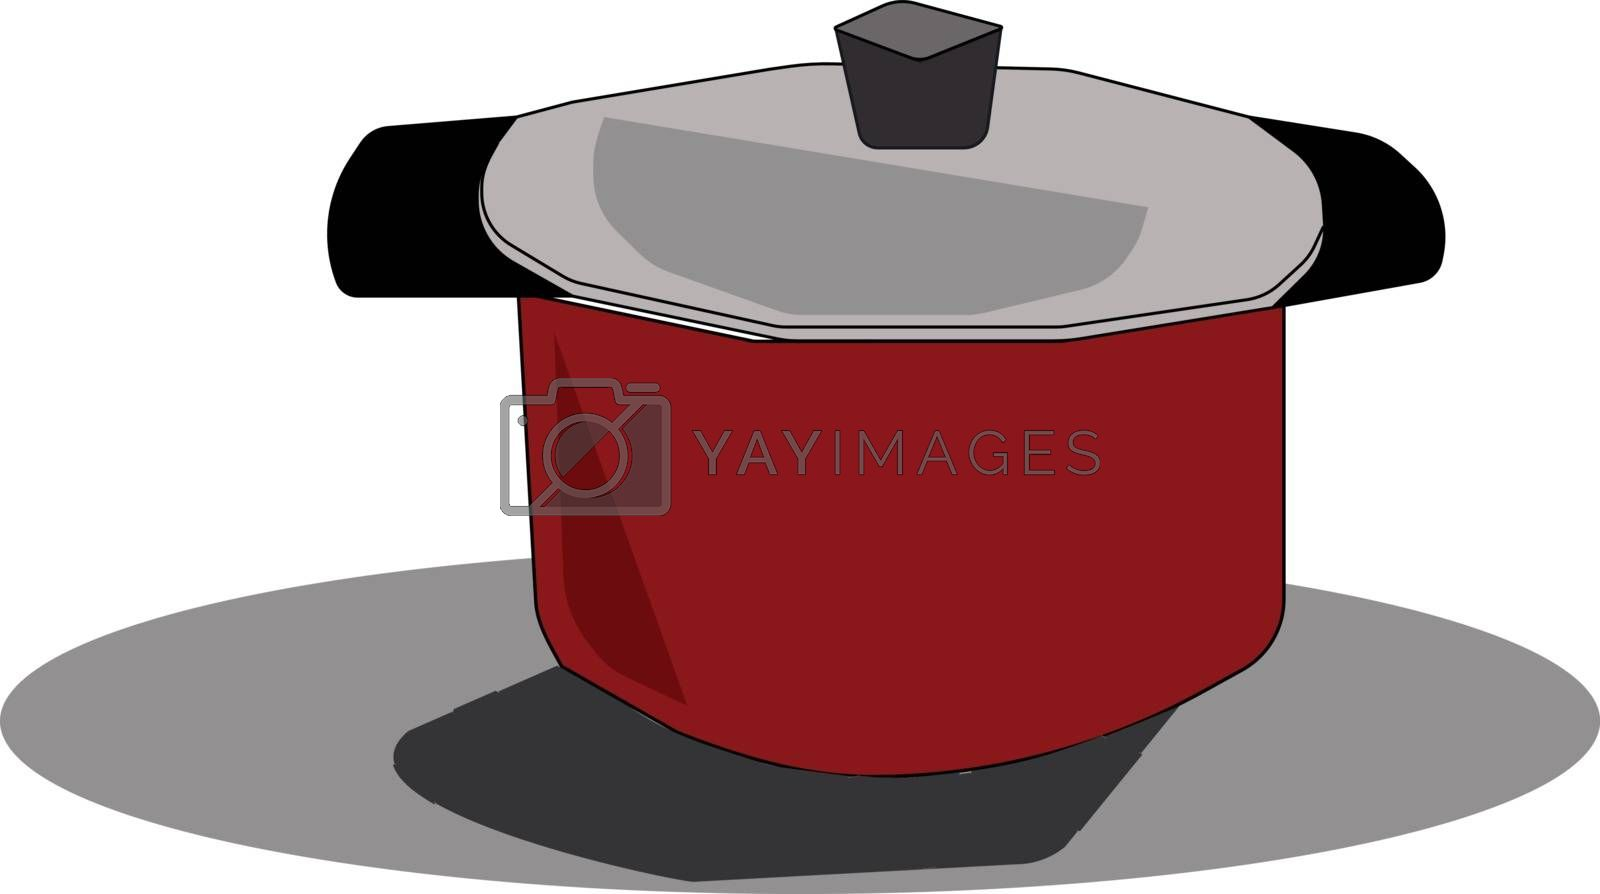 Royalty free image of Clipart of a red cookware with tempered glass lid vector or colo by Morphart